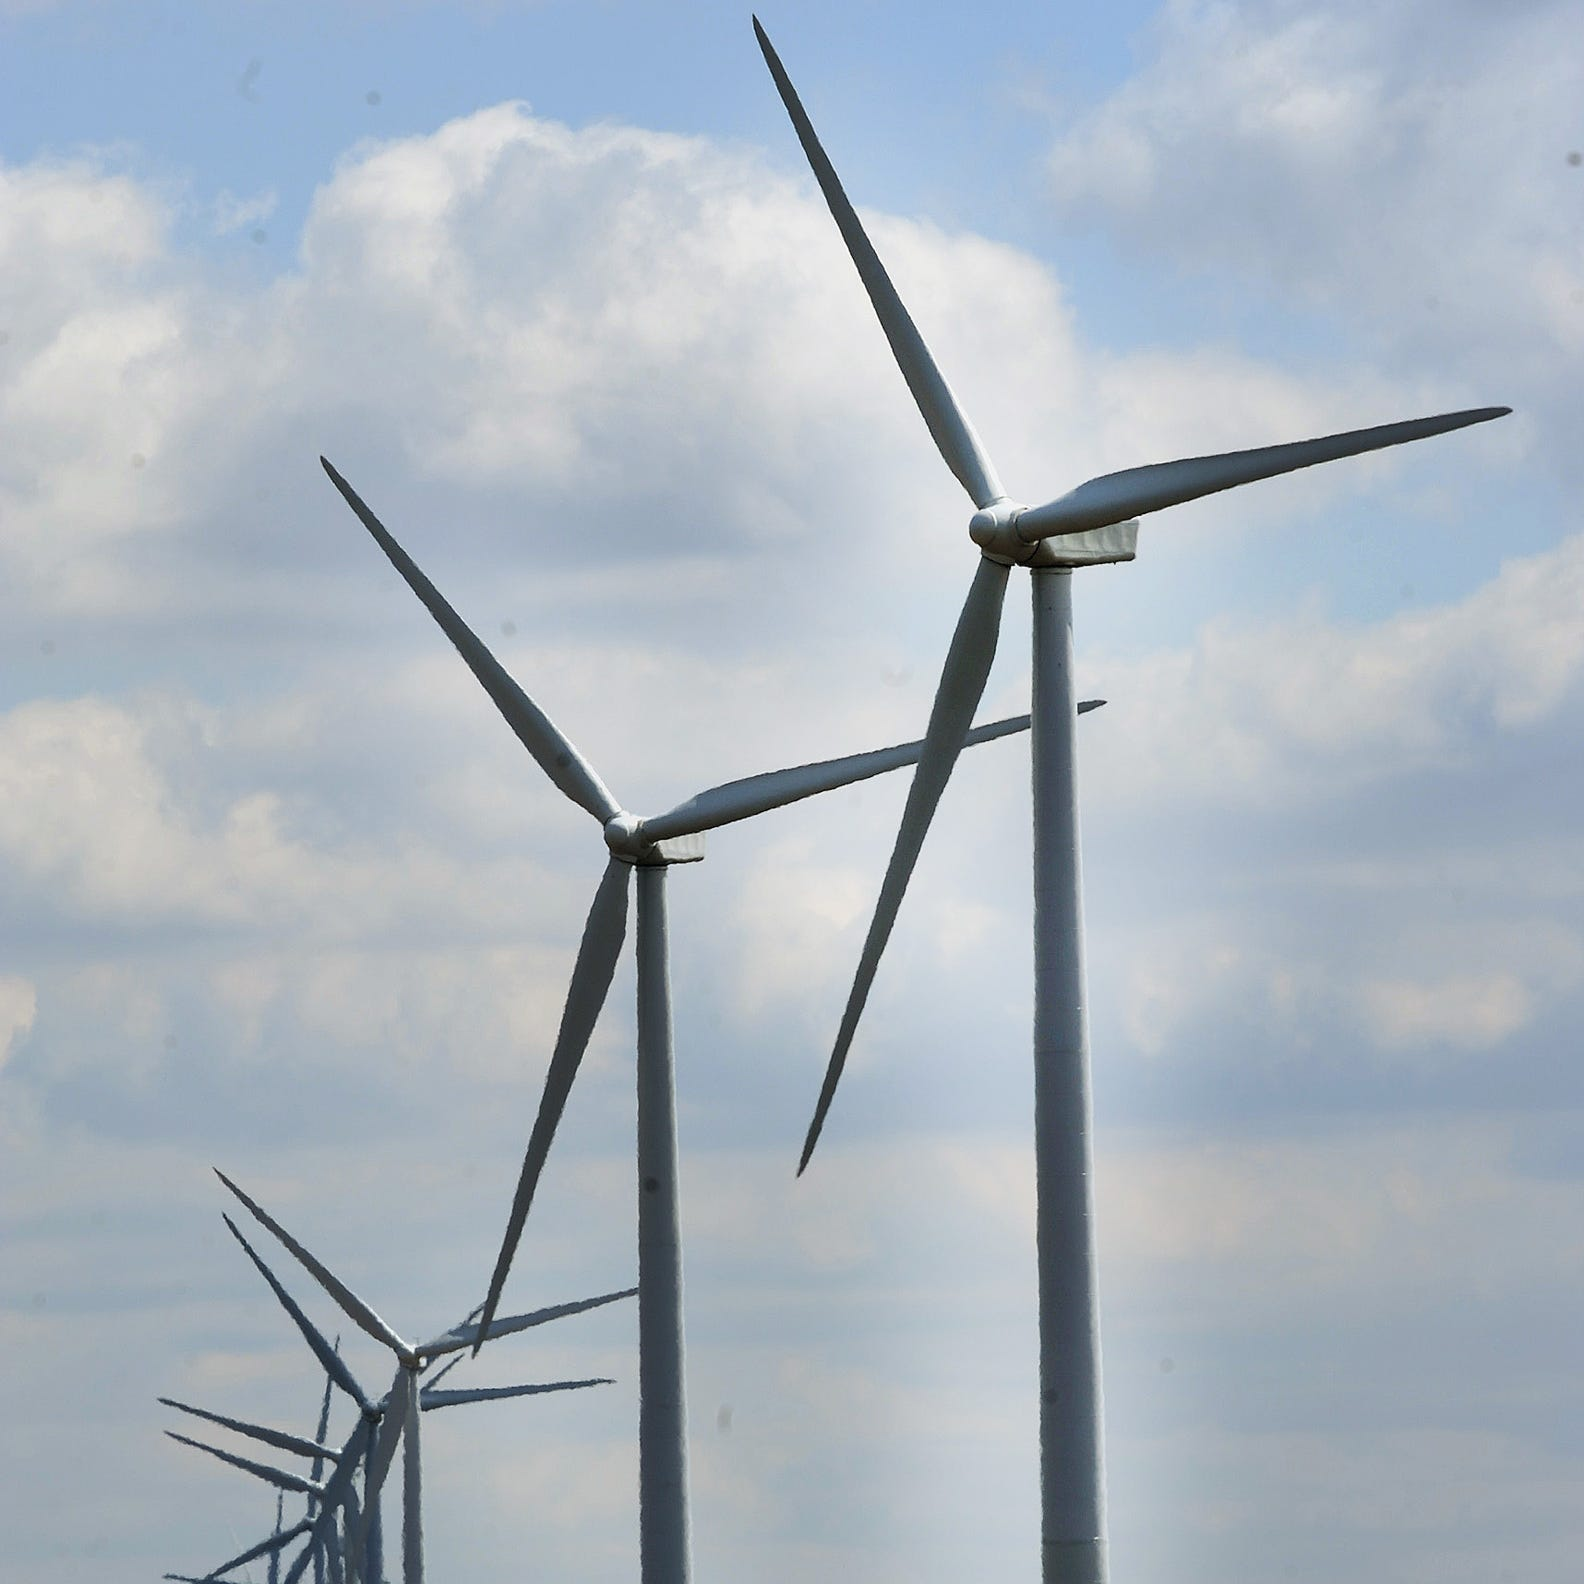 Over objections, wind farm ban recommended for Tippecanoe County